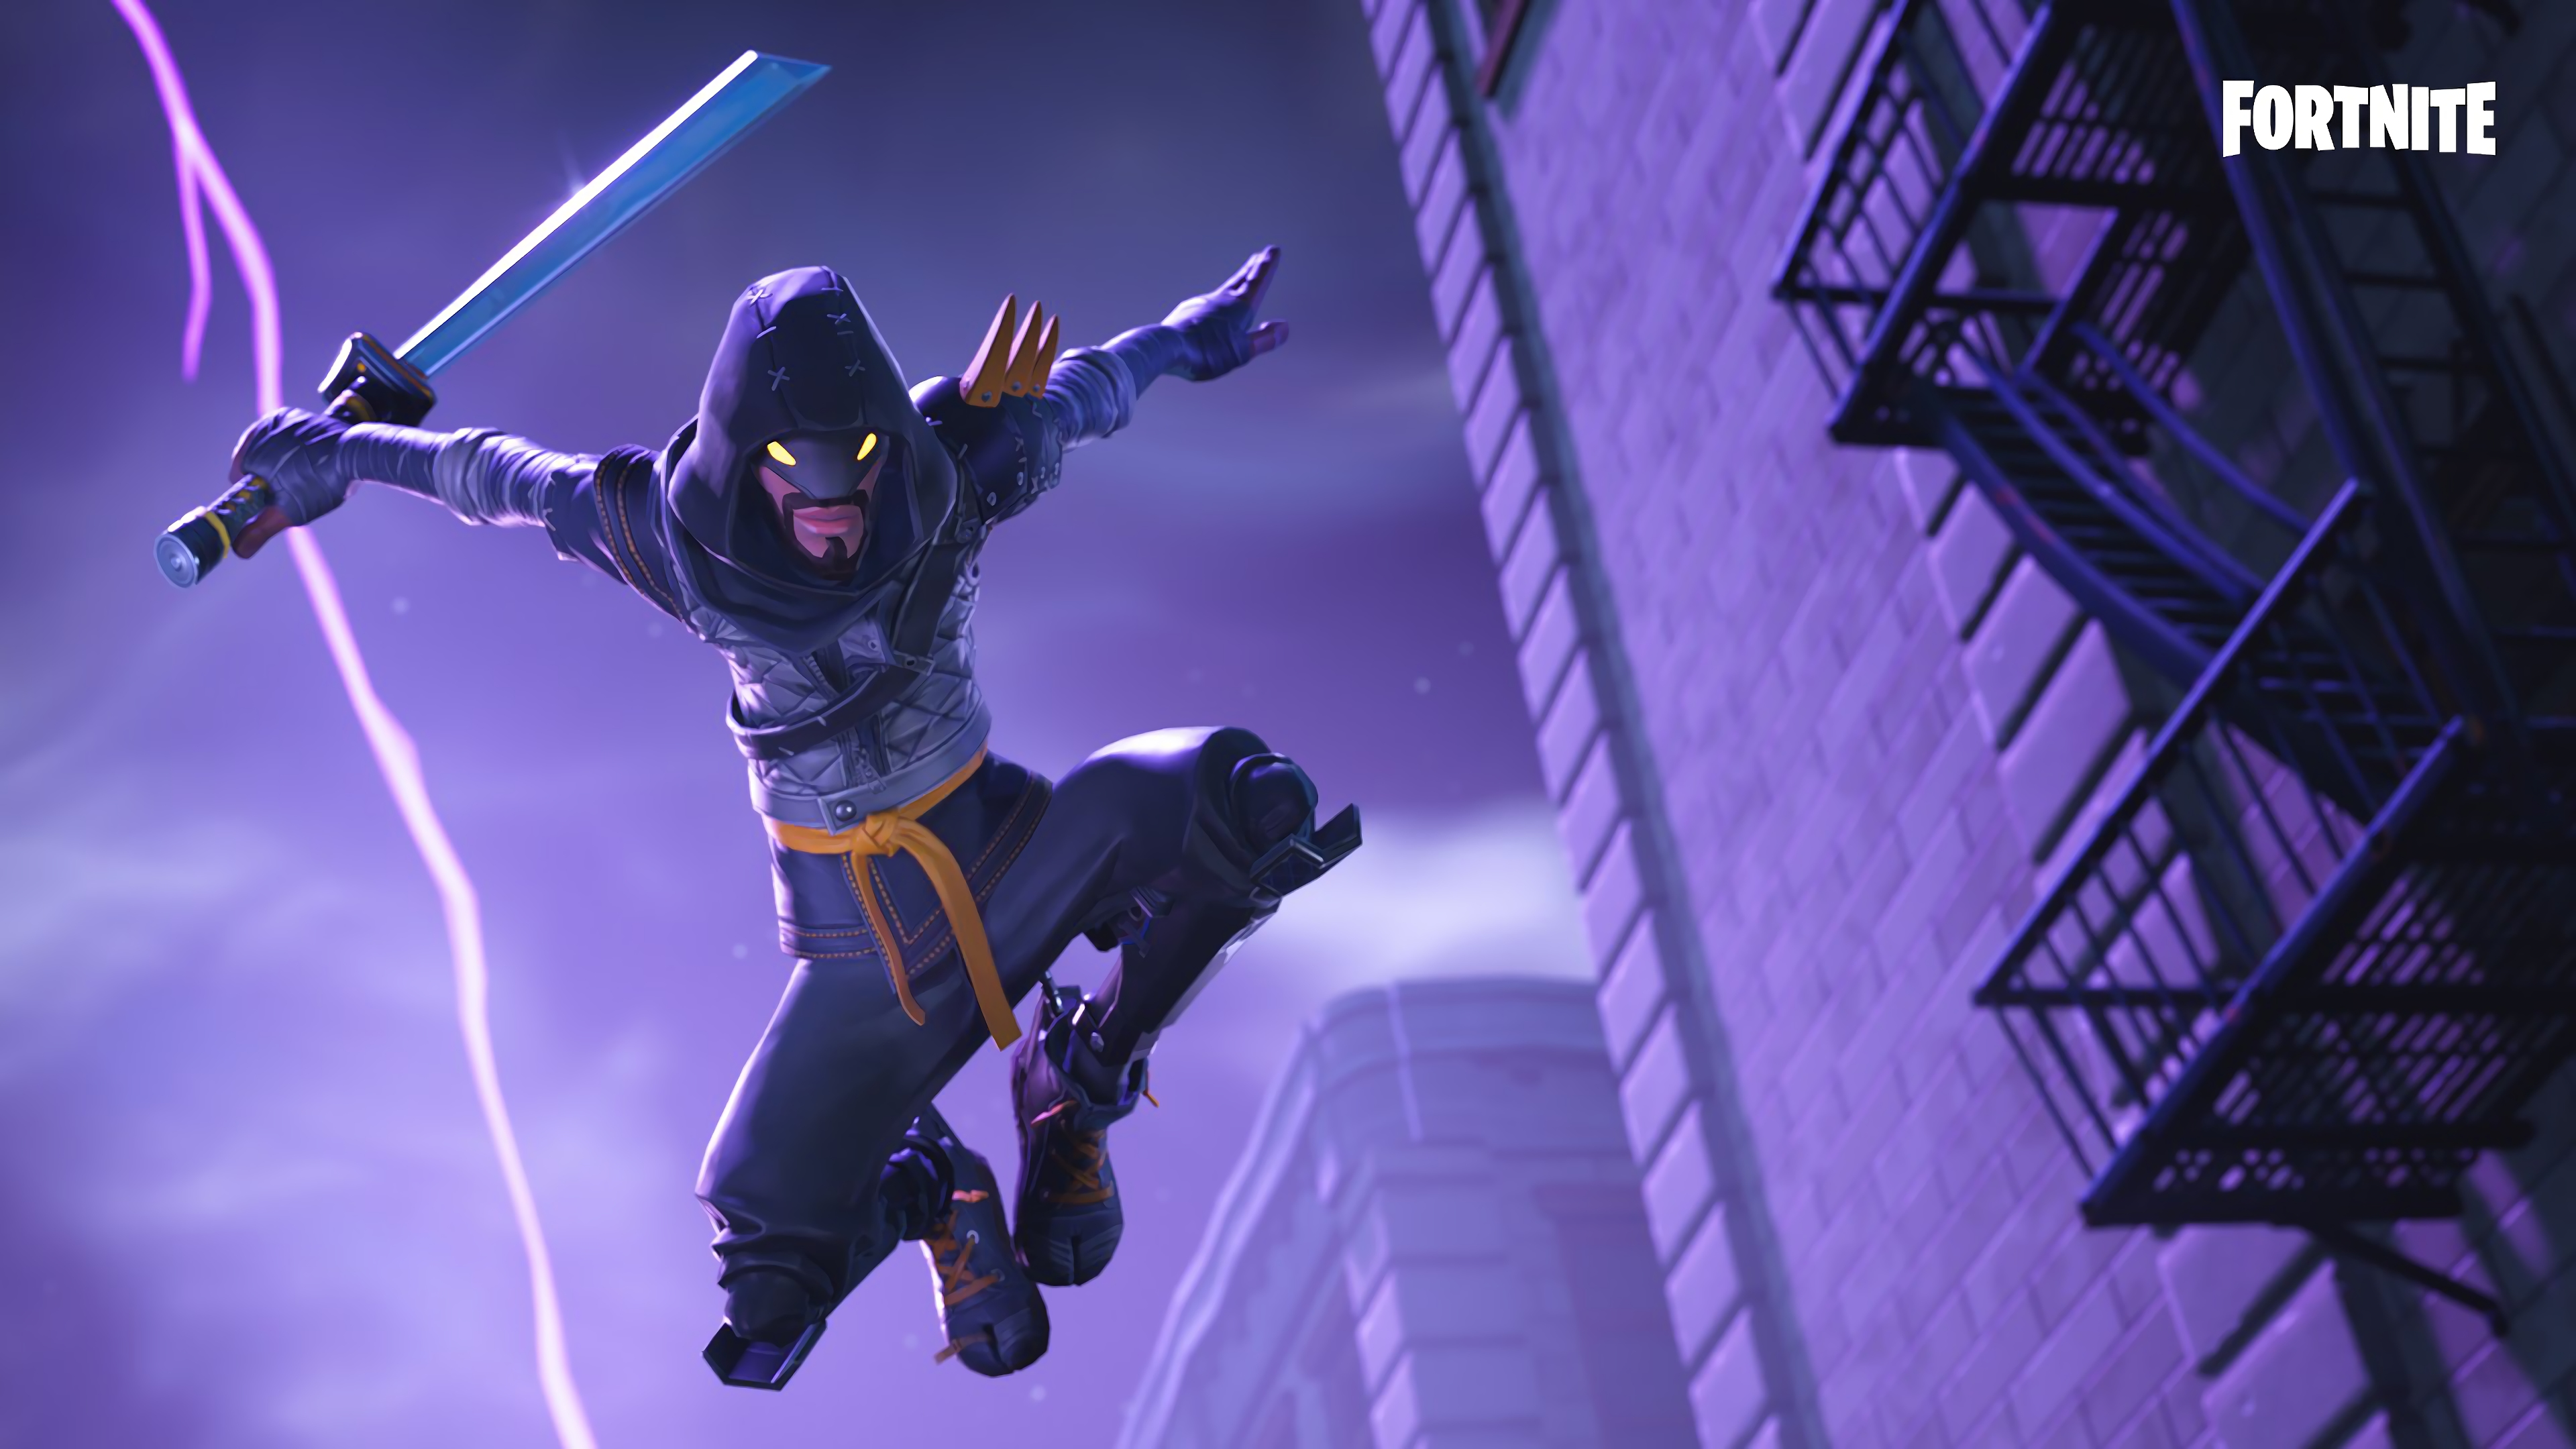 320x240 Fortnite Mythic Cloaked Star Ninja Apple Iphoneipod